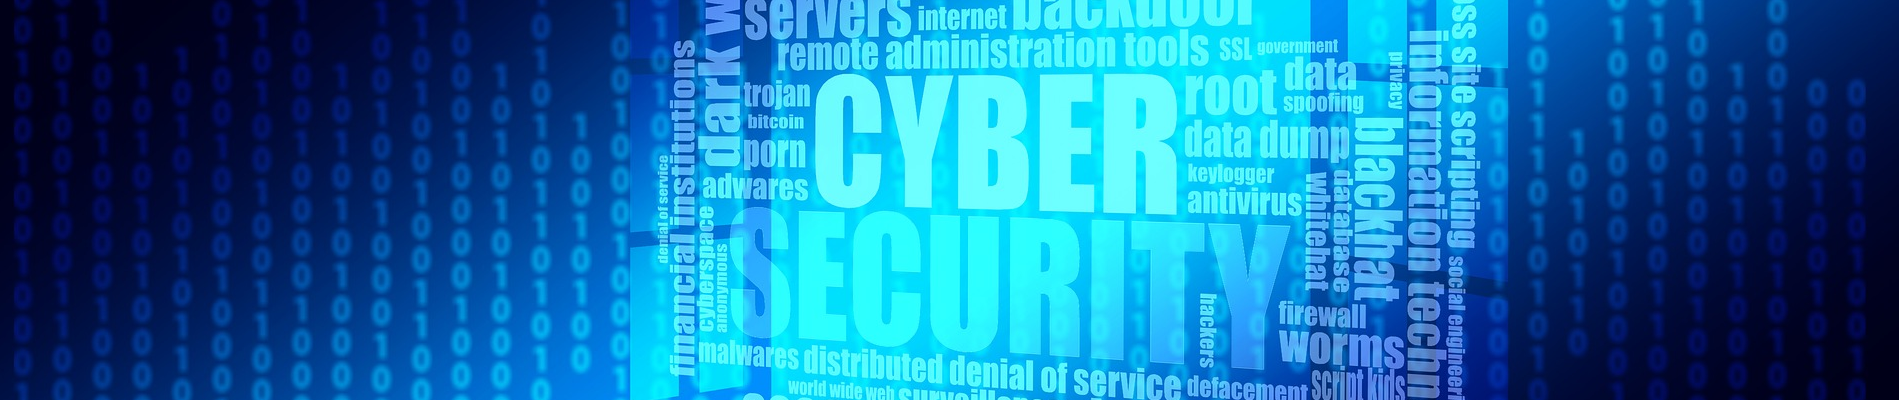 cyber risk banner.png